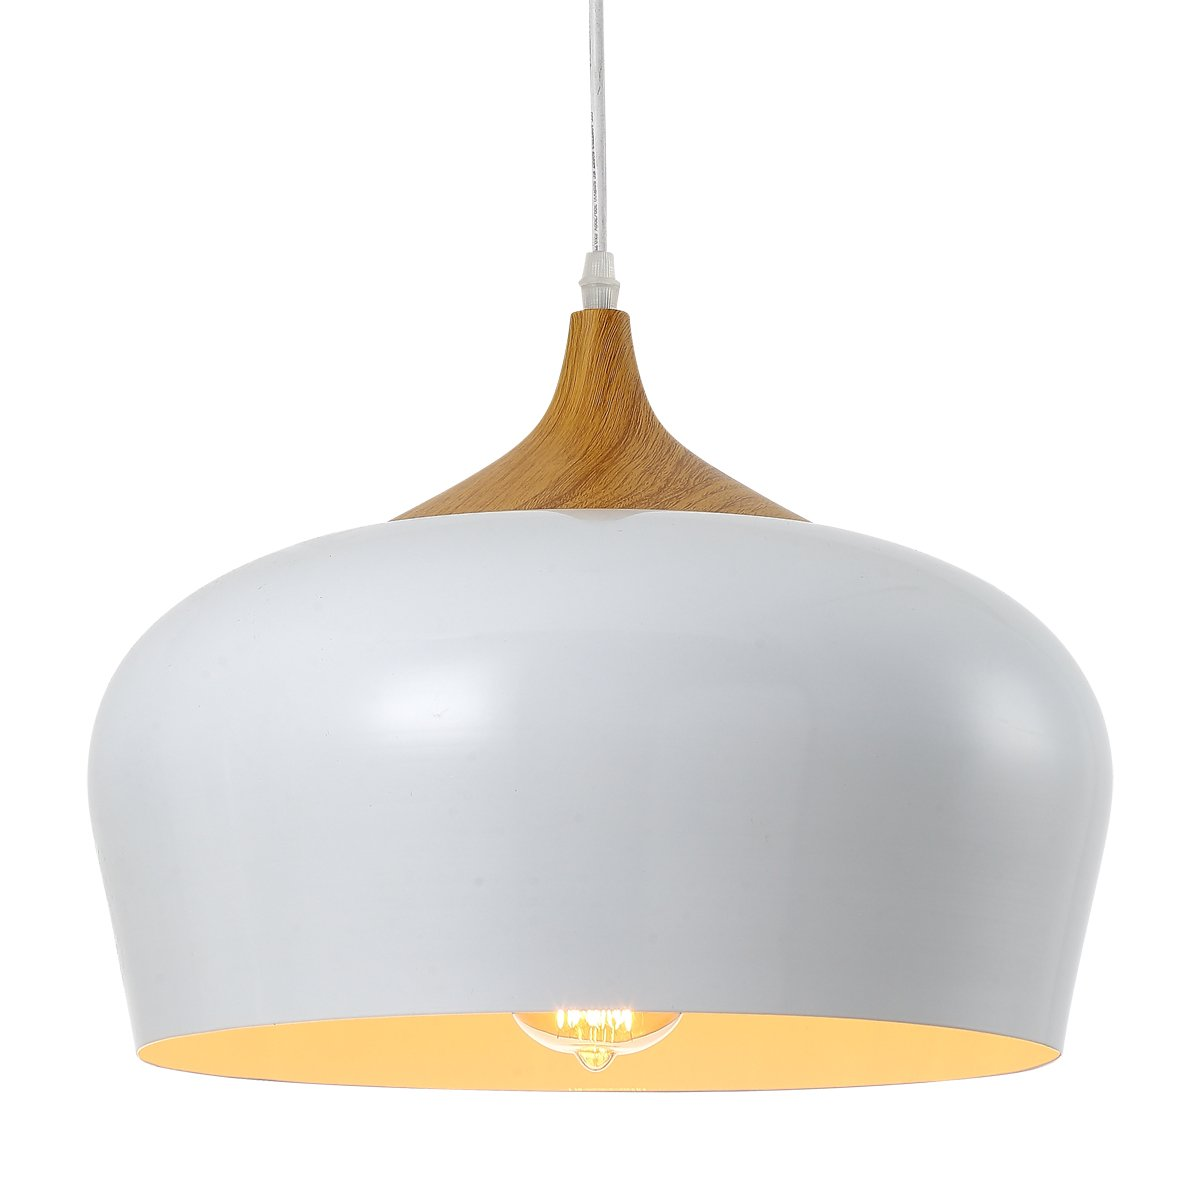 HOMIFORCE Modern Style 1-Light White Demo Pendant Light with Metal Shade in Vintage Industrial Edison Retro Style Hanging CL000501 (Libra White)